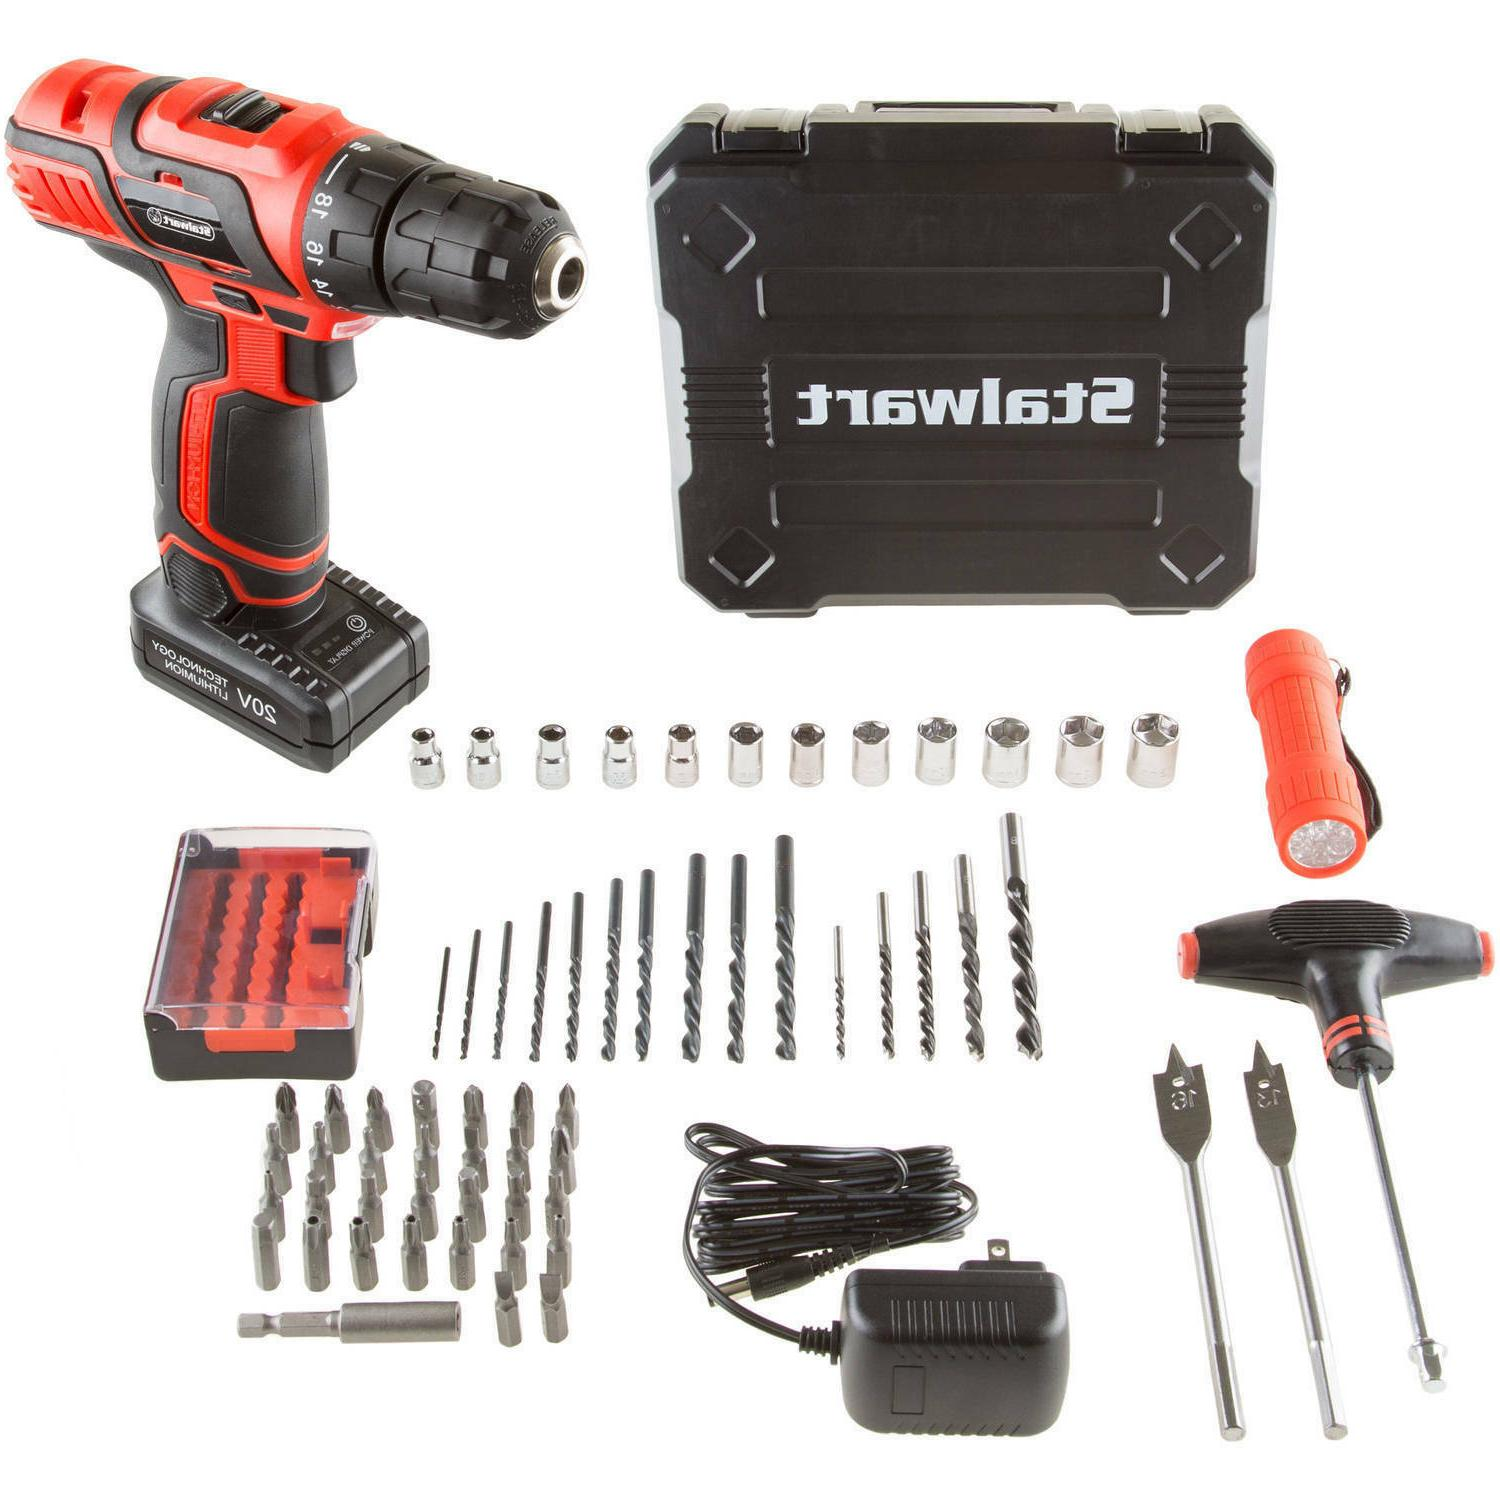 cordless drill w socket wrench